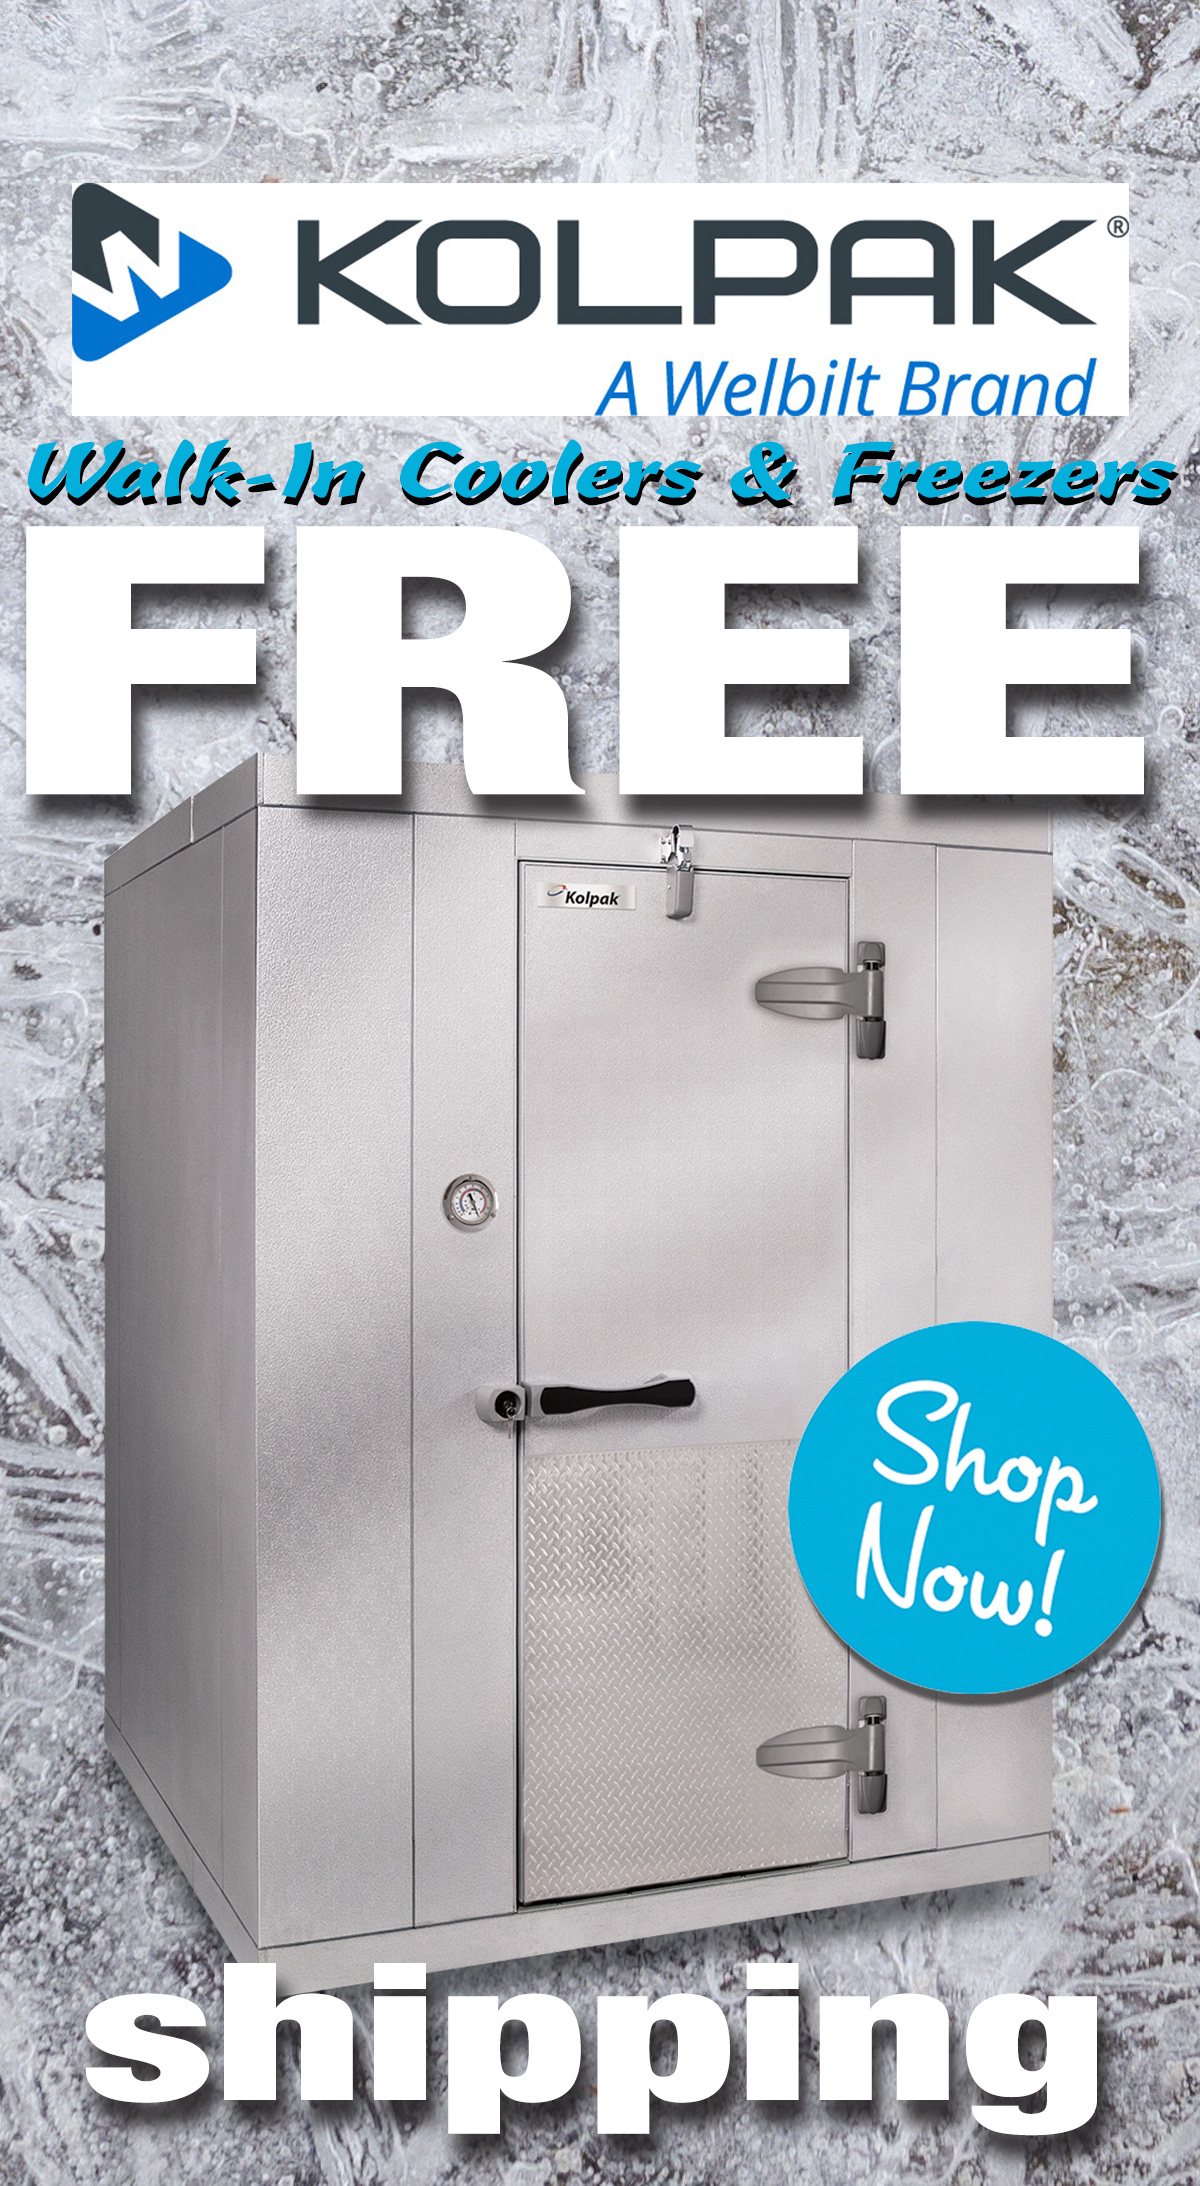 Kolpak Walk-In Coolers and Freezers ship free to you today!